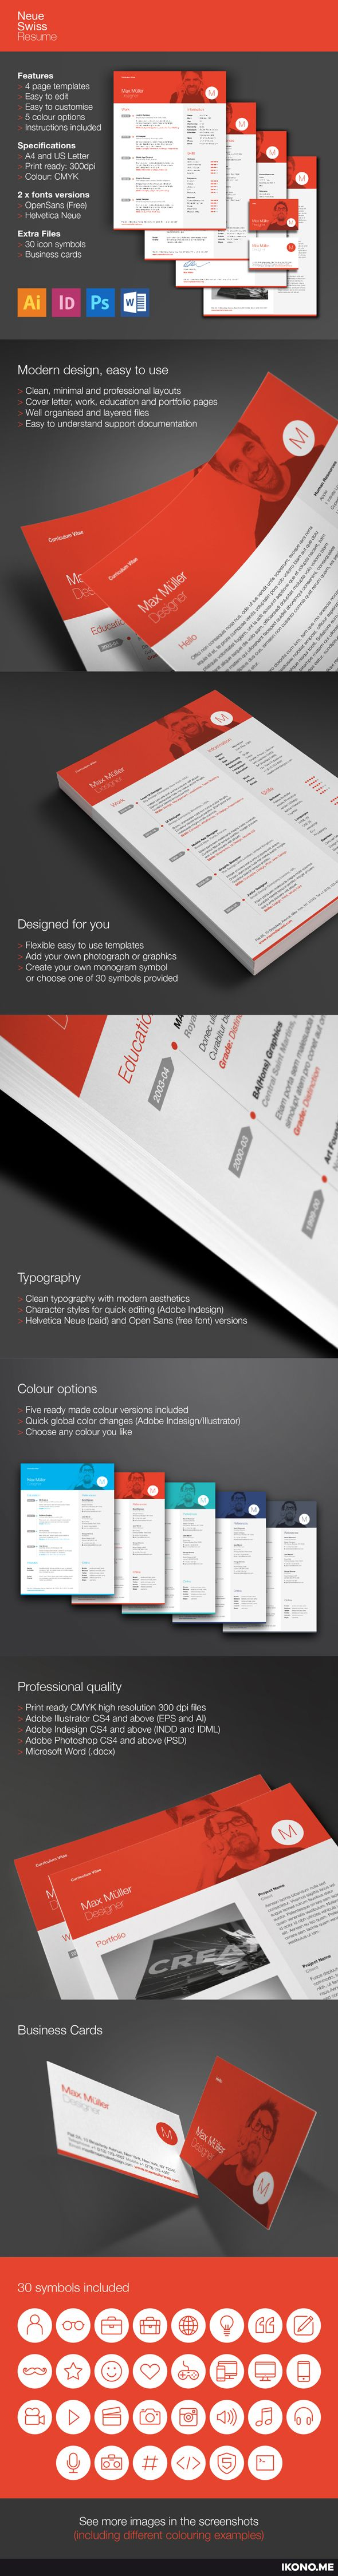 Functional Format Resume Template%0A Neue Swiss Resume Template on Behance